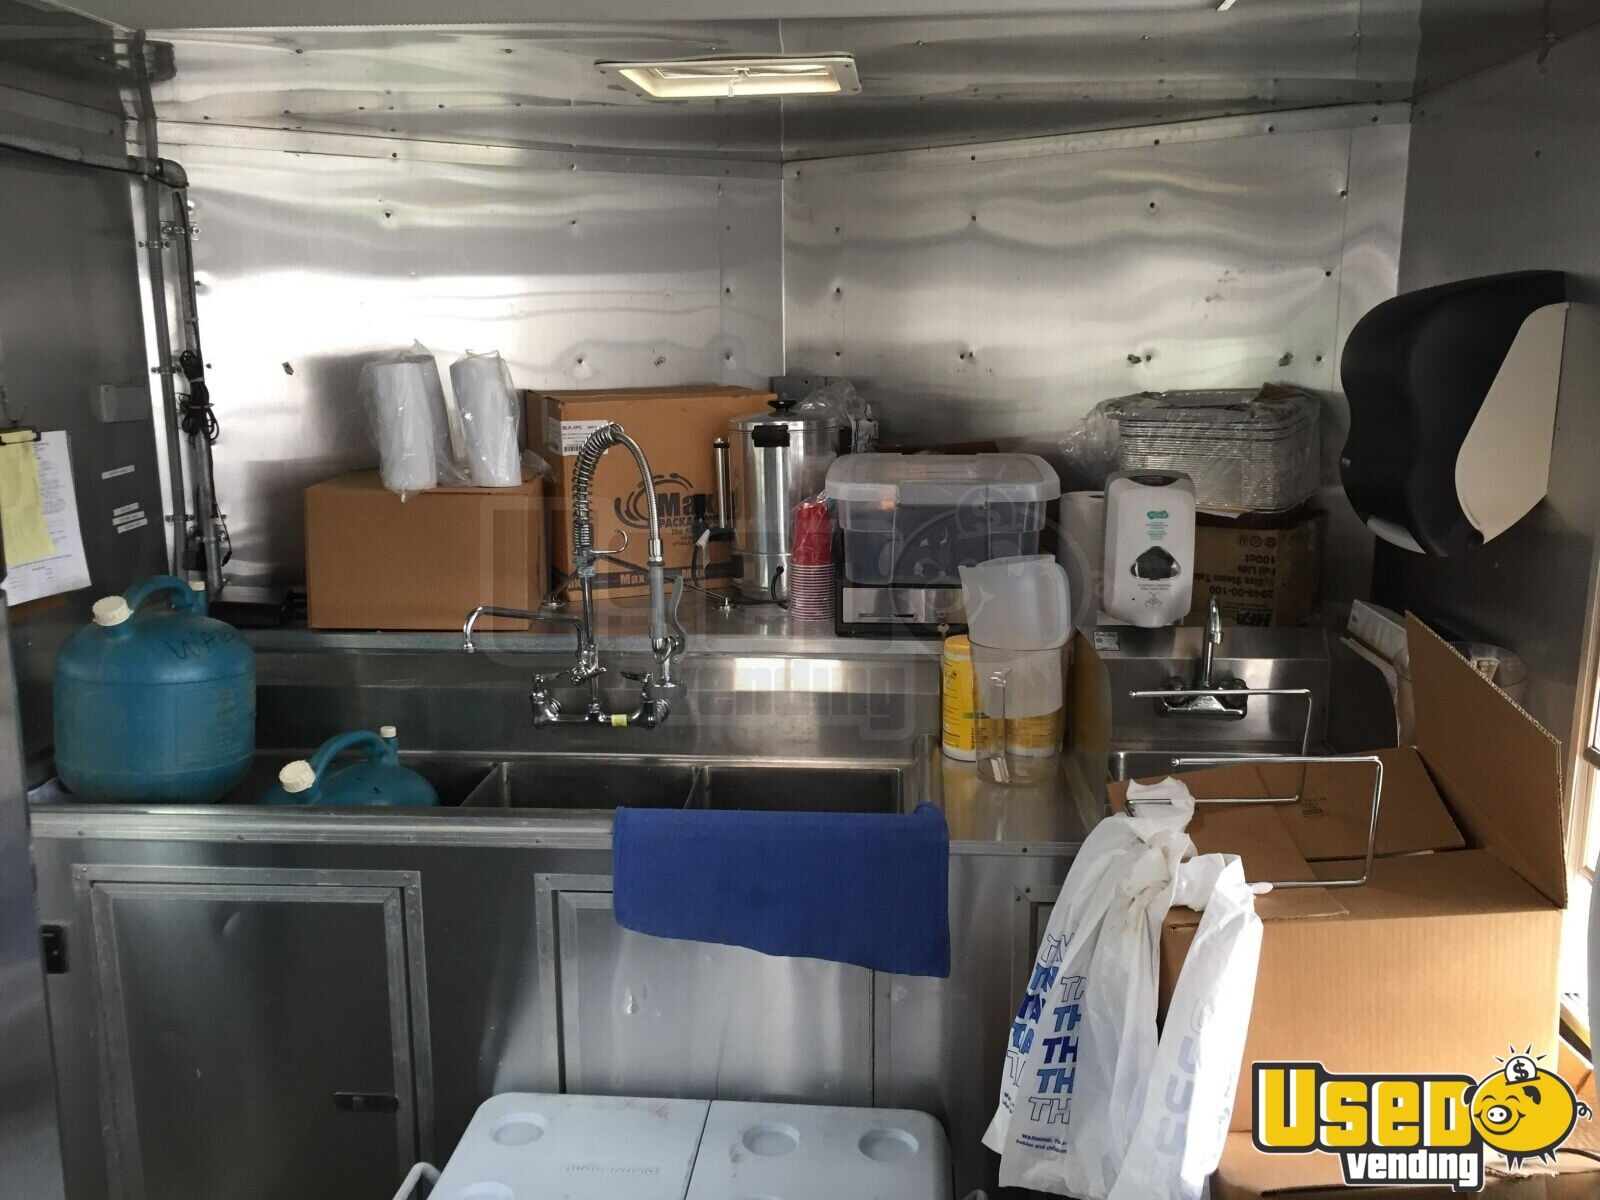 2012 Food Concession Trailer Kitchen Food Trailer Upright Freezer Pennsylvania for Sale - 9